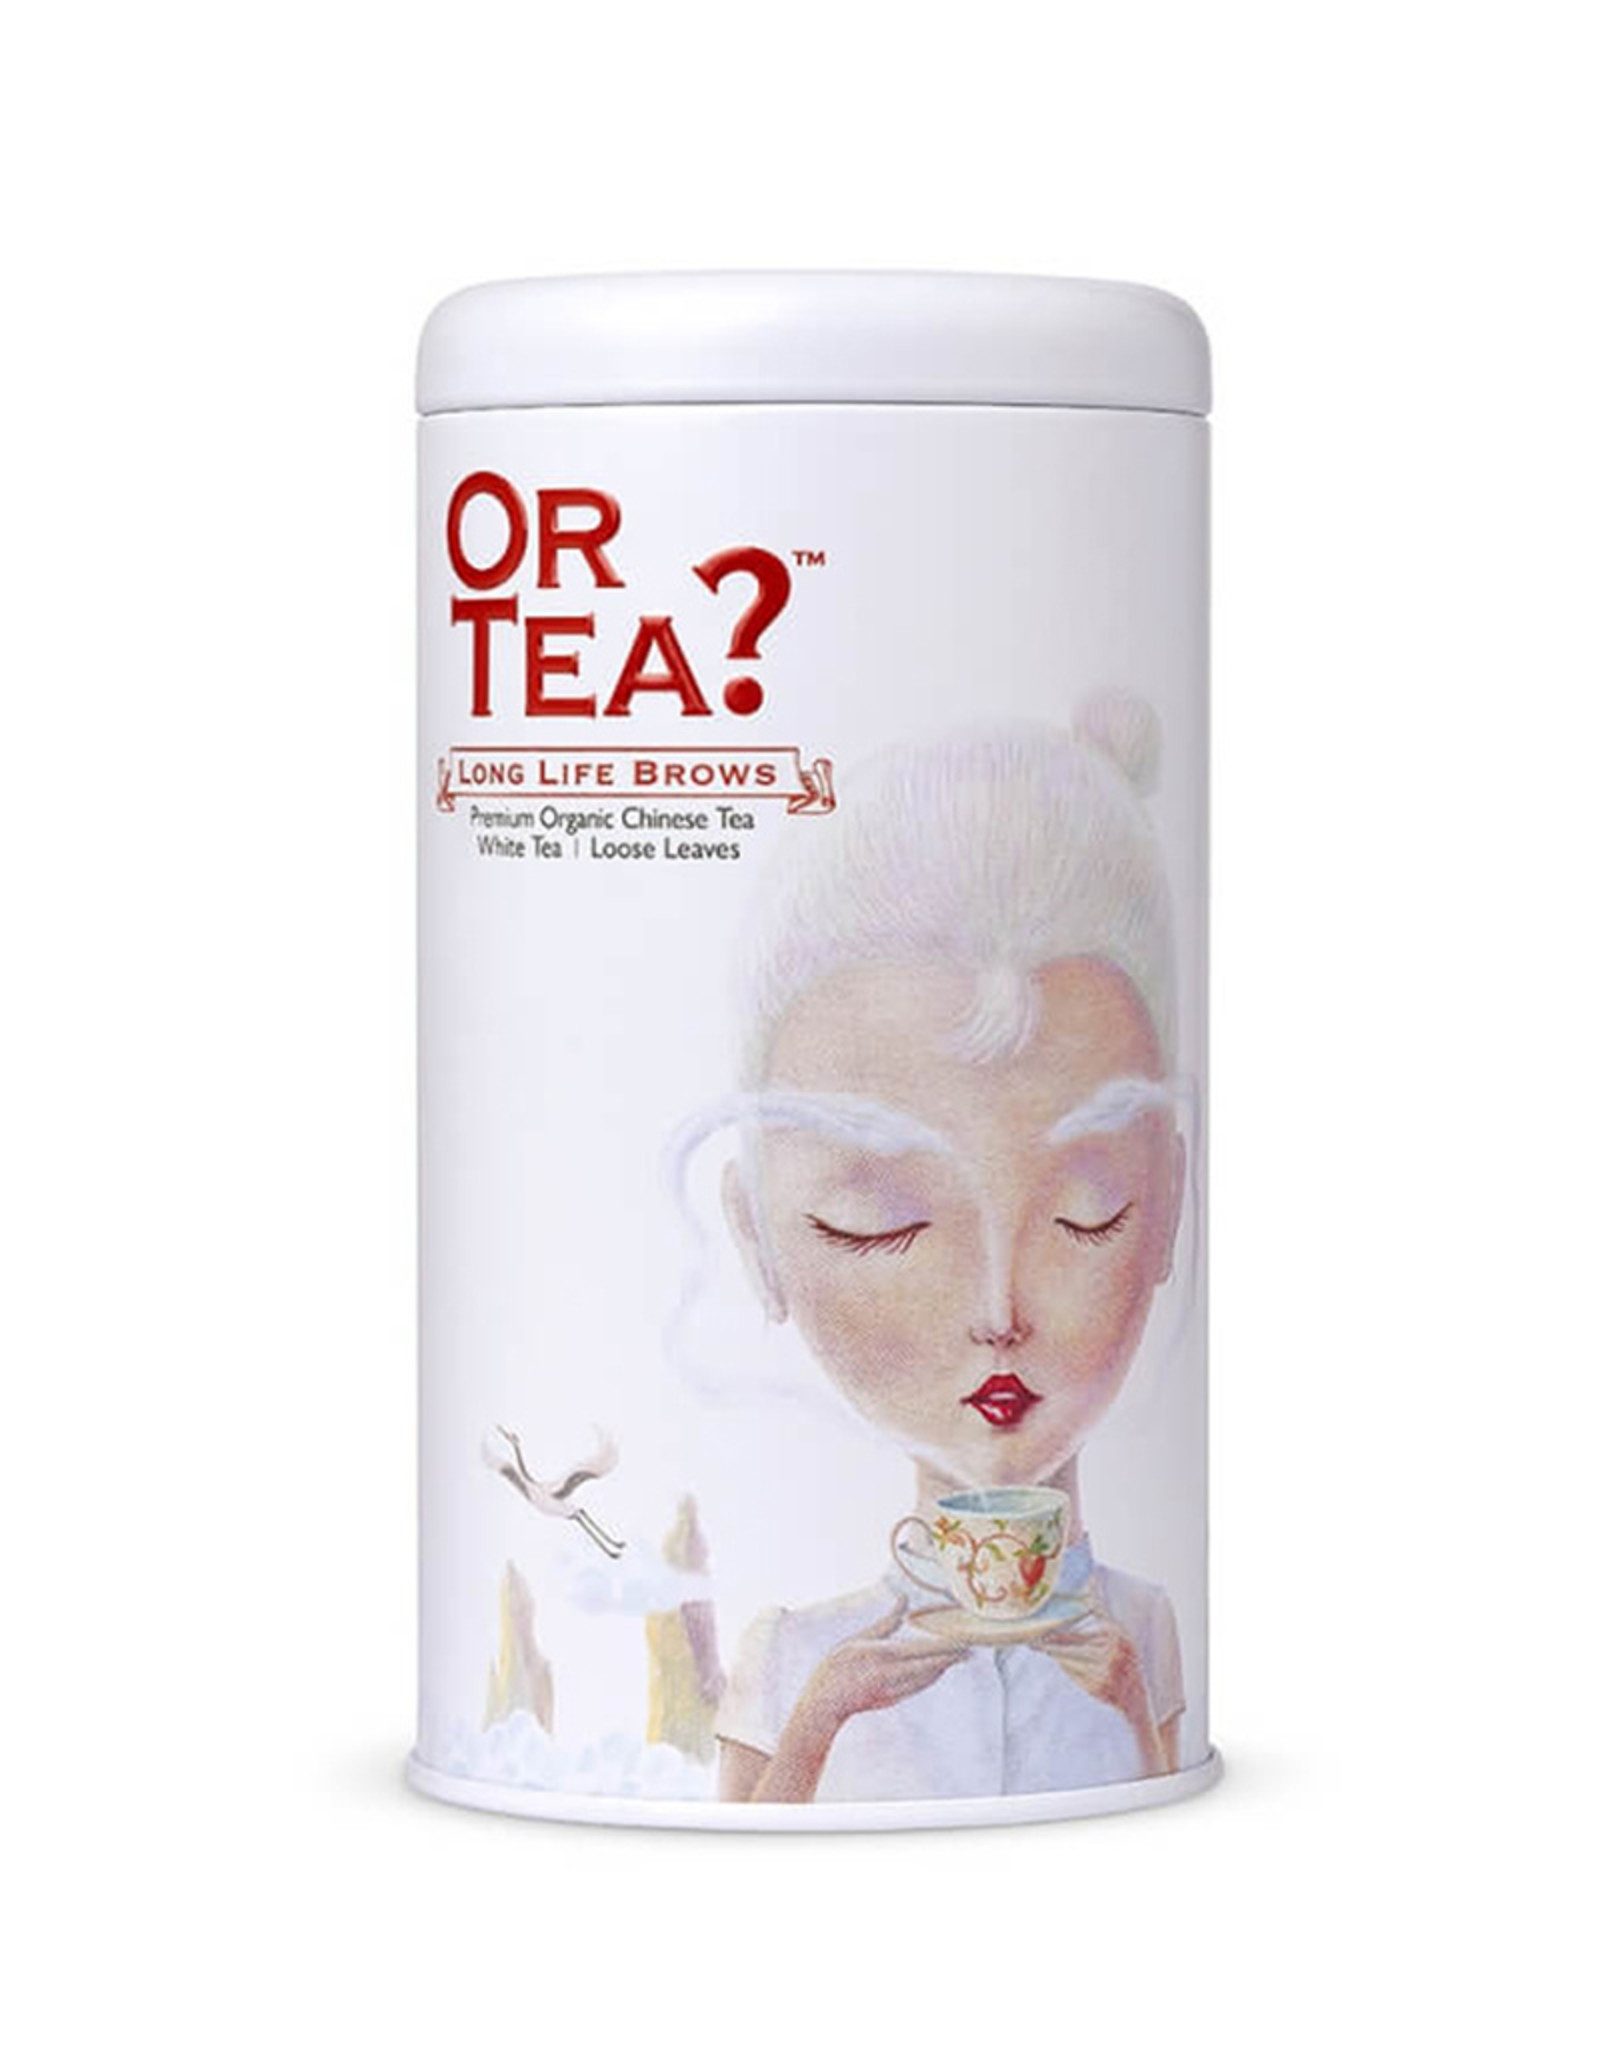 Or Tea? Long Life Brows - Silver Needle witte thee